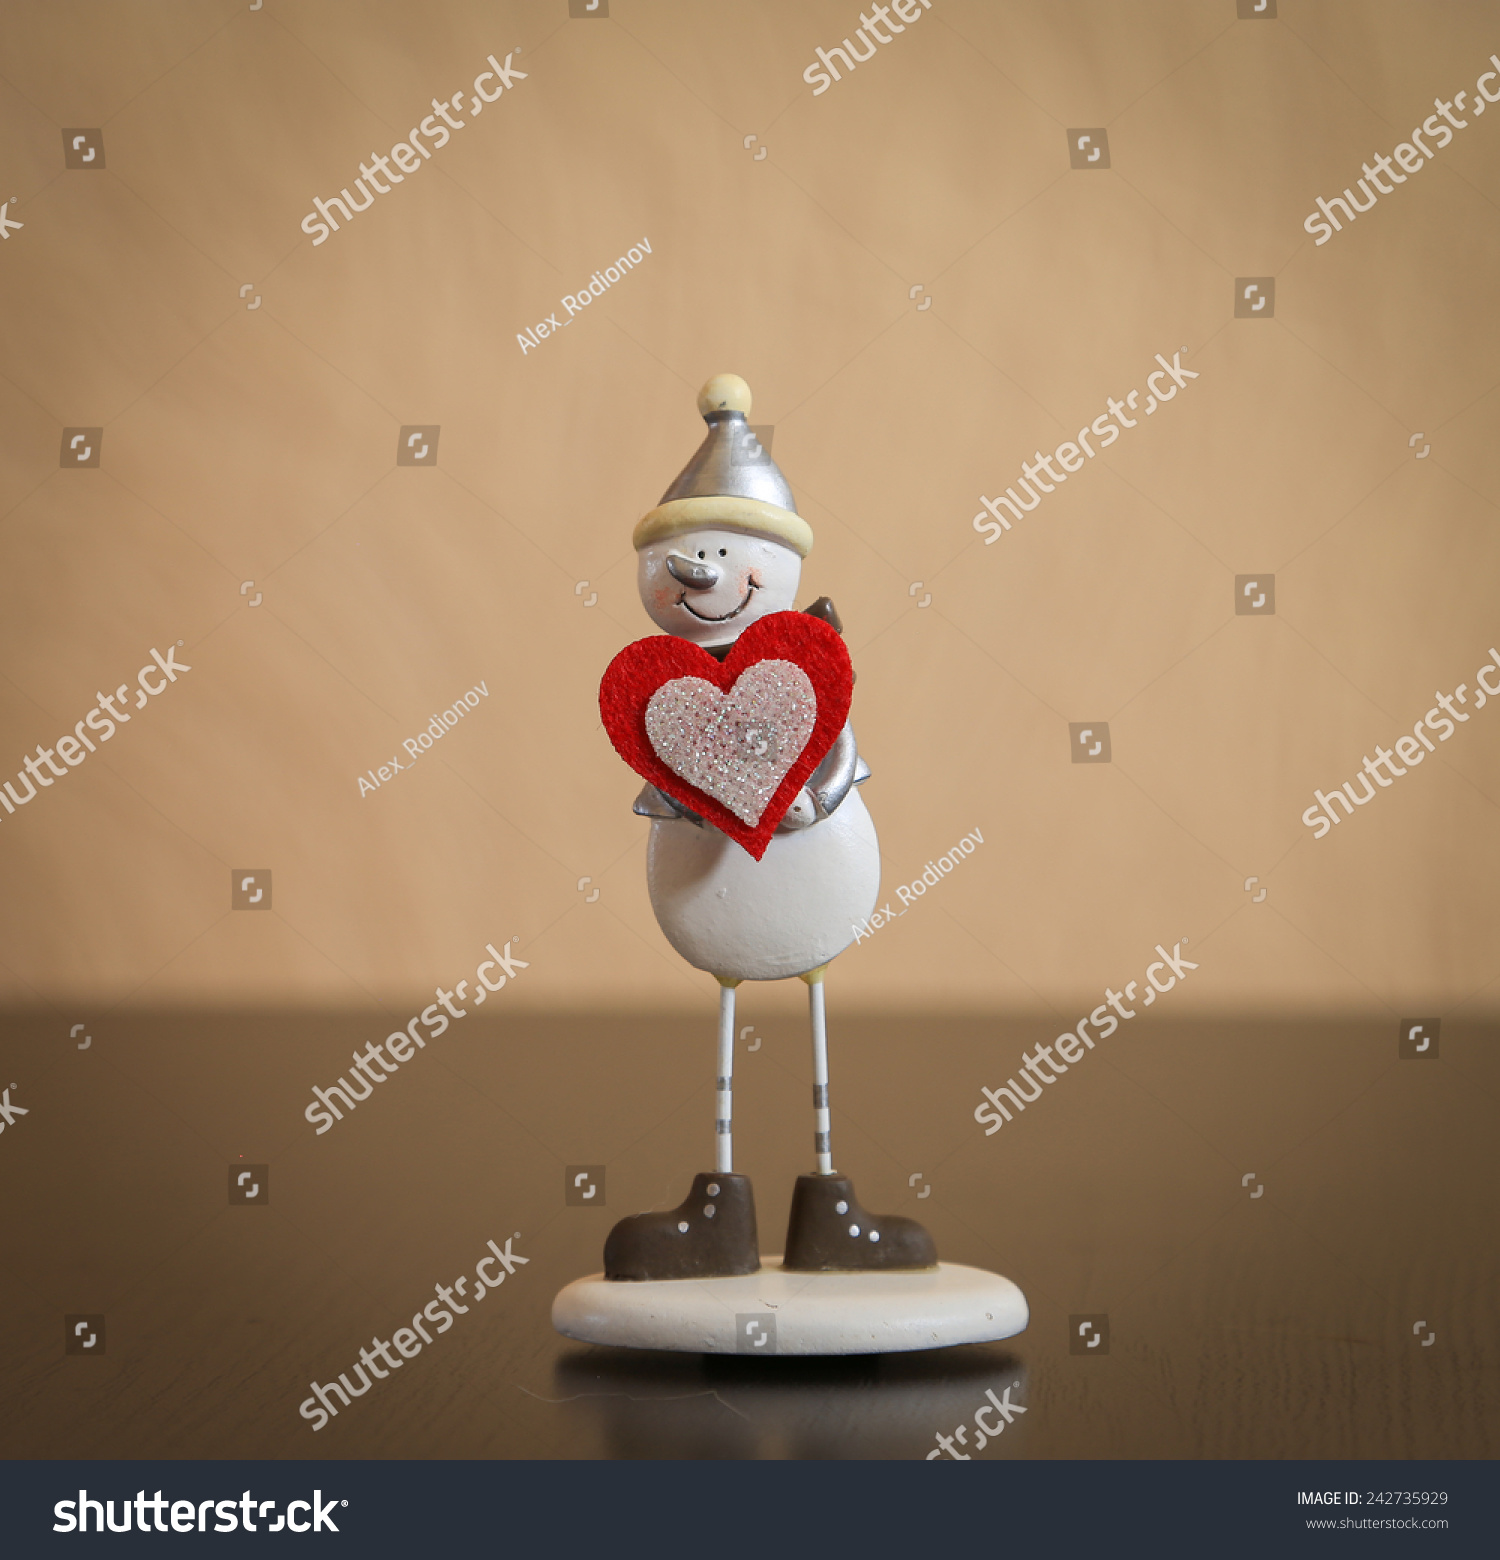 Snowman With Red Heart